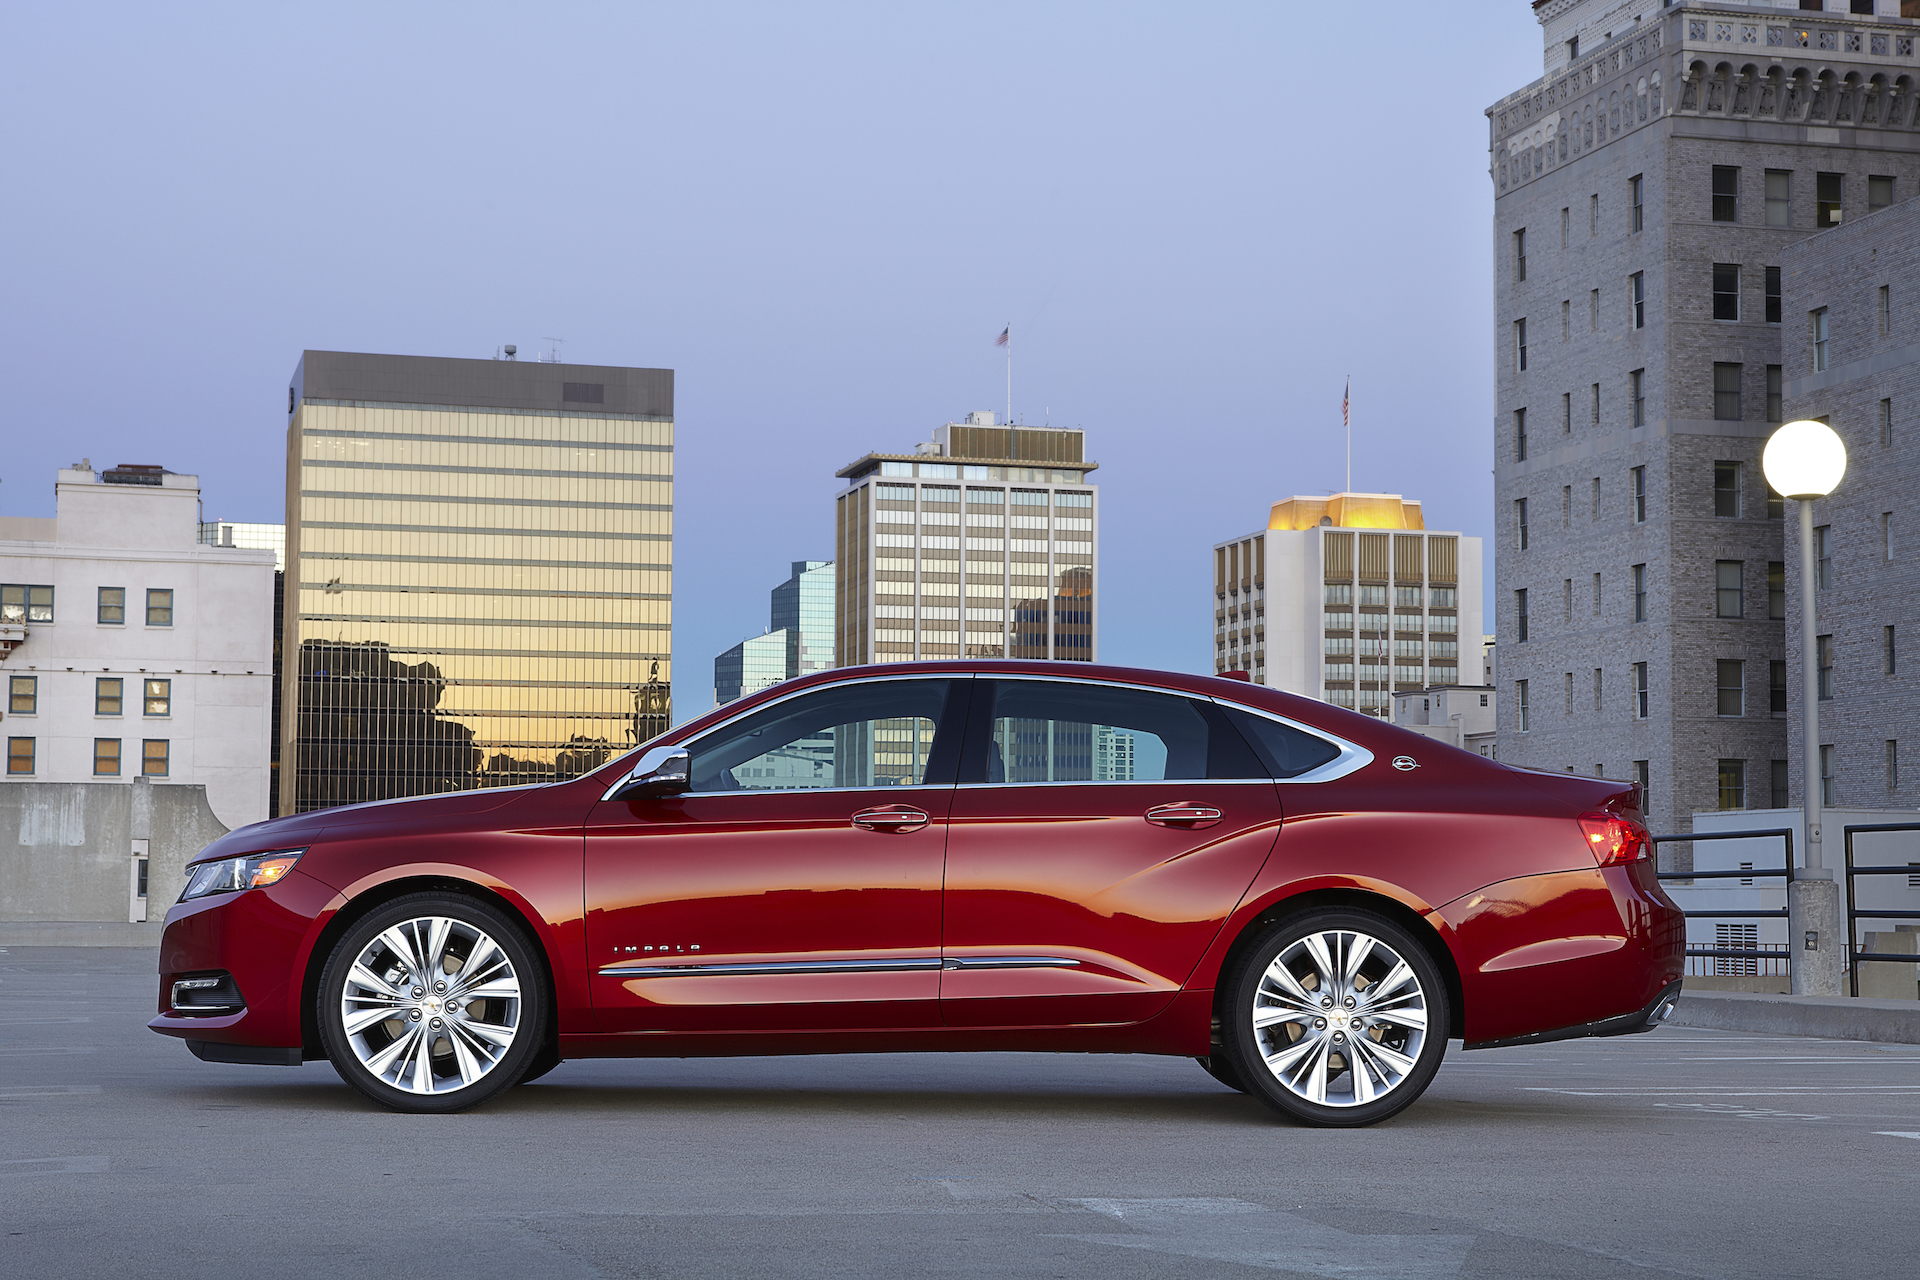 2017 Chevrolet Impala Chevy Features Review The Car